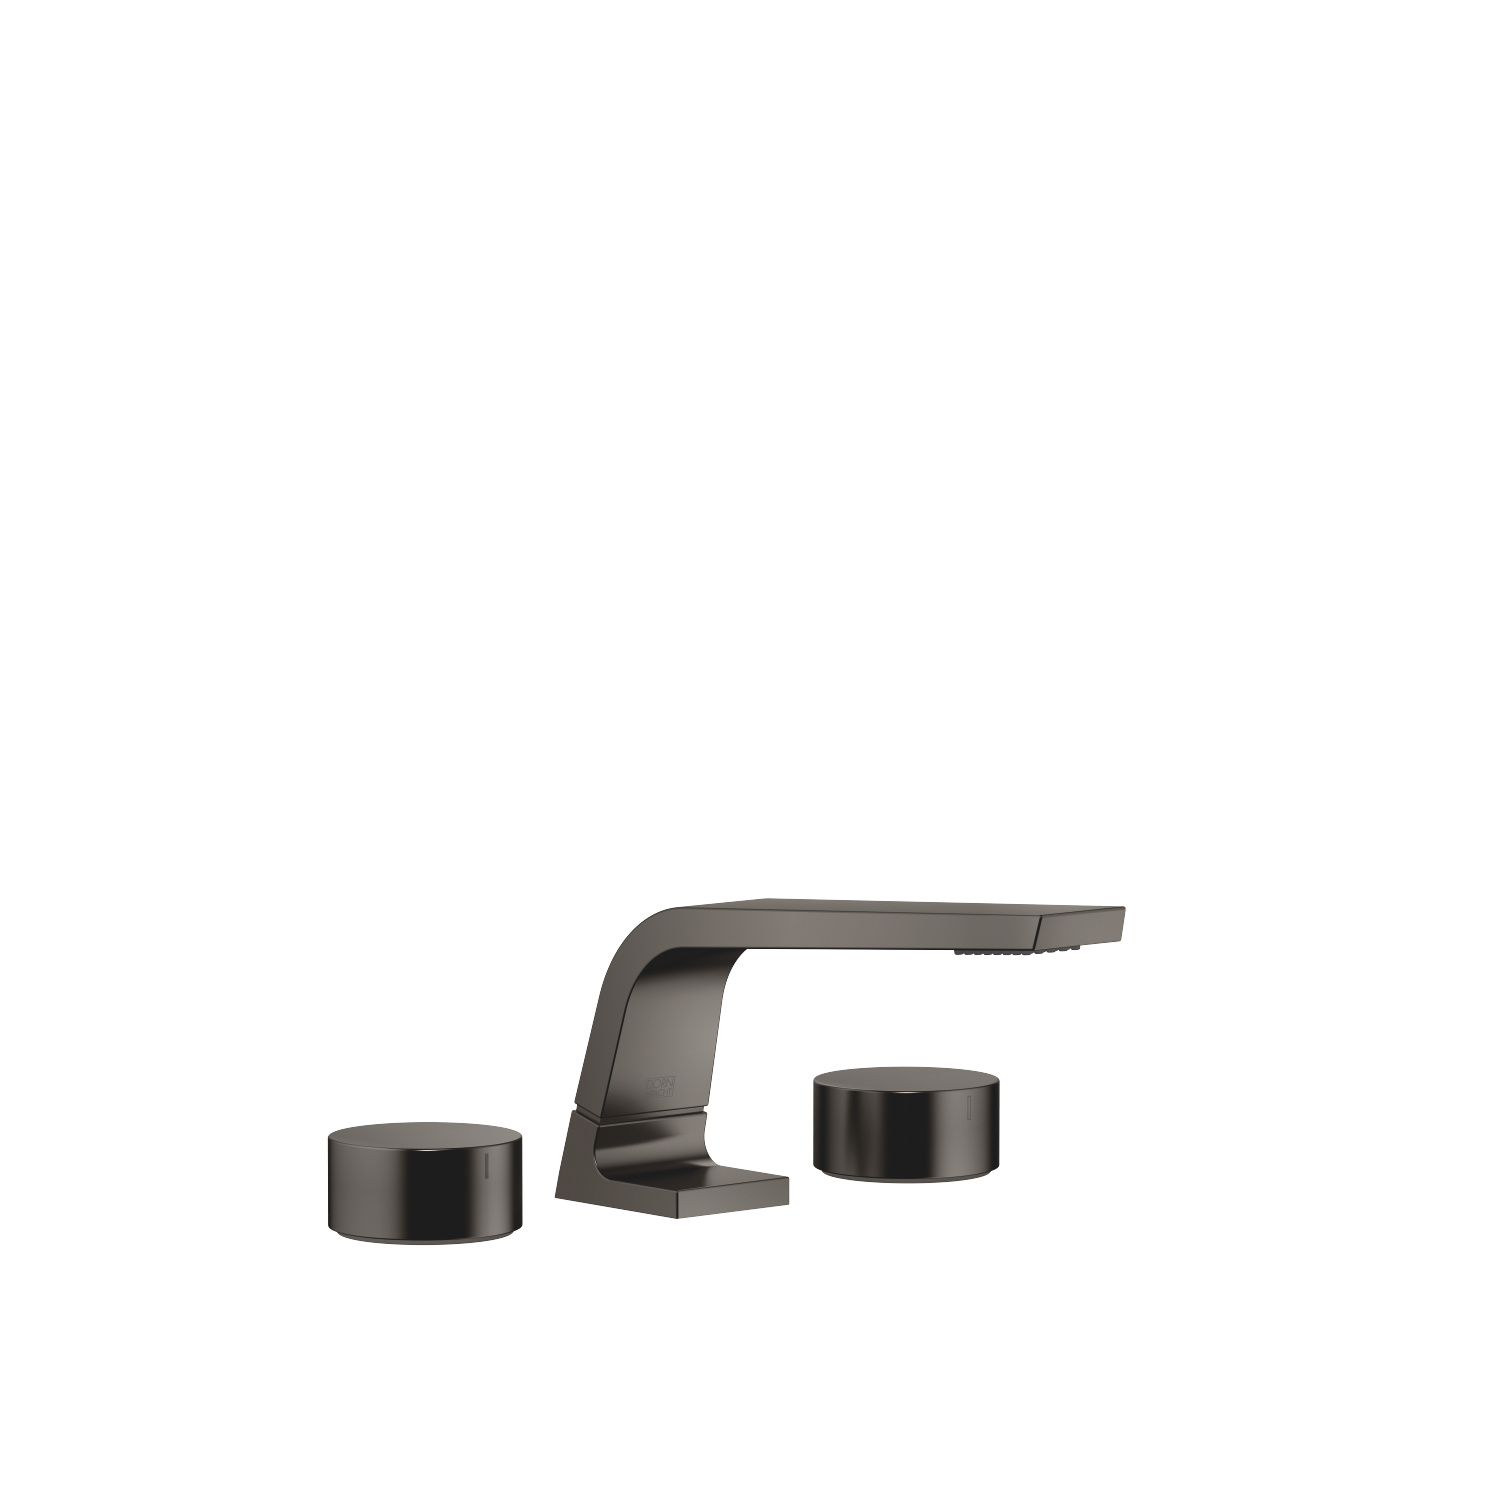 Three-hole lavatory mixer without drain - Dark Platinum matte